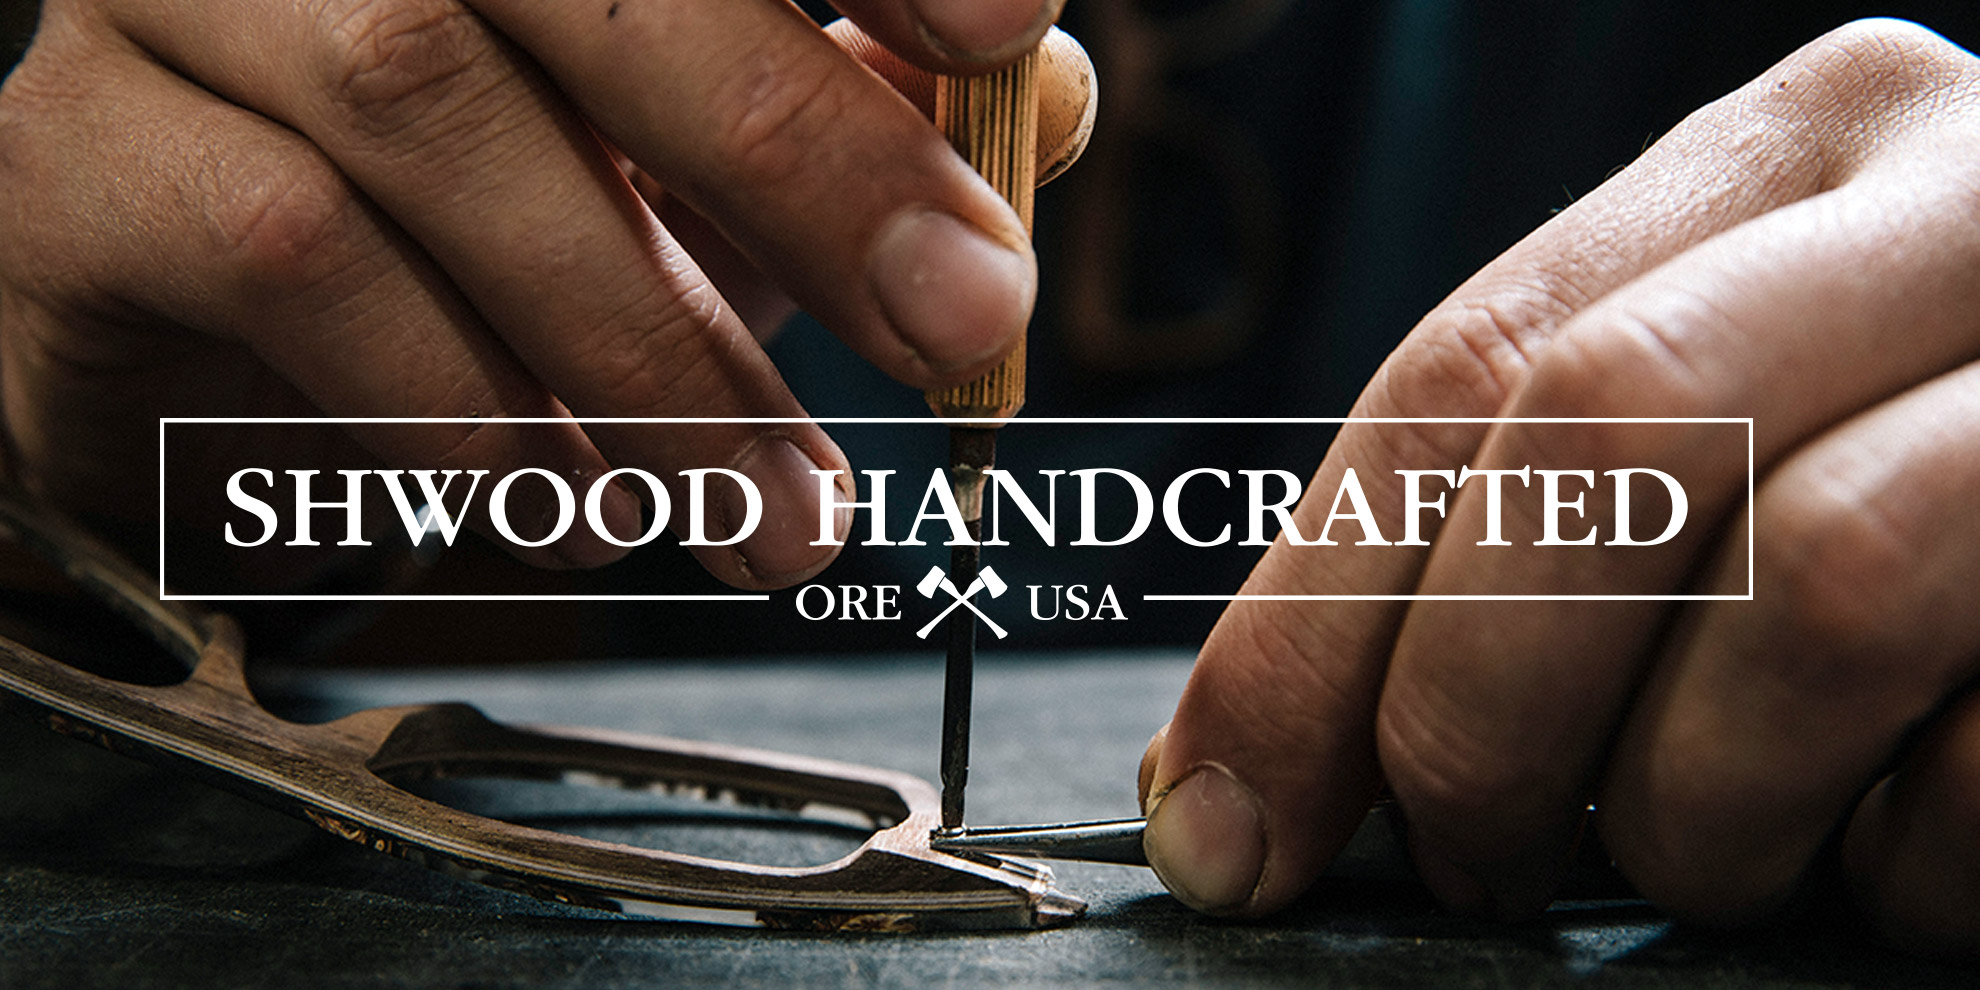 Shwood - Handcrafted natural eyewear